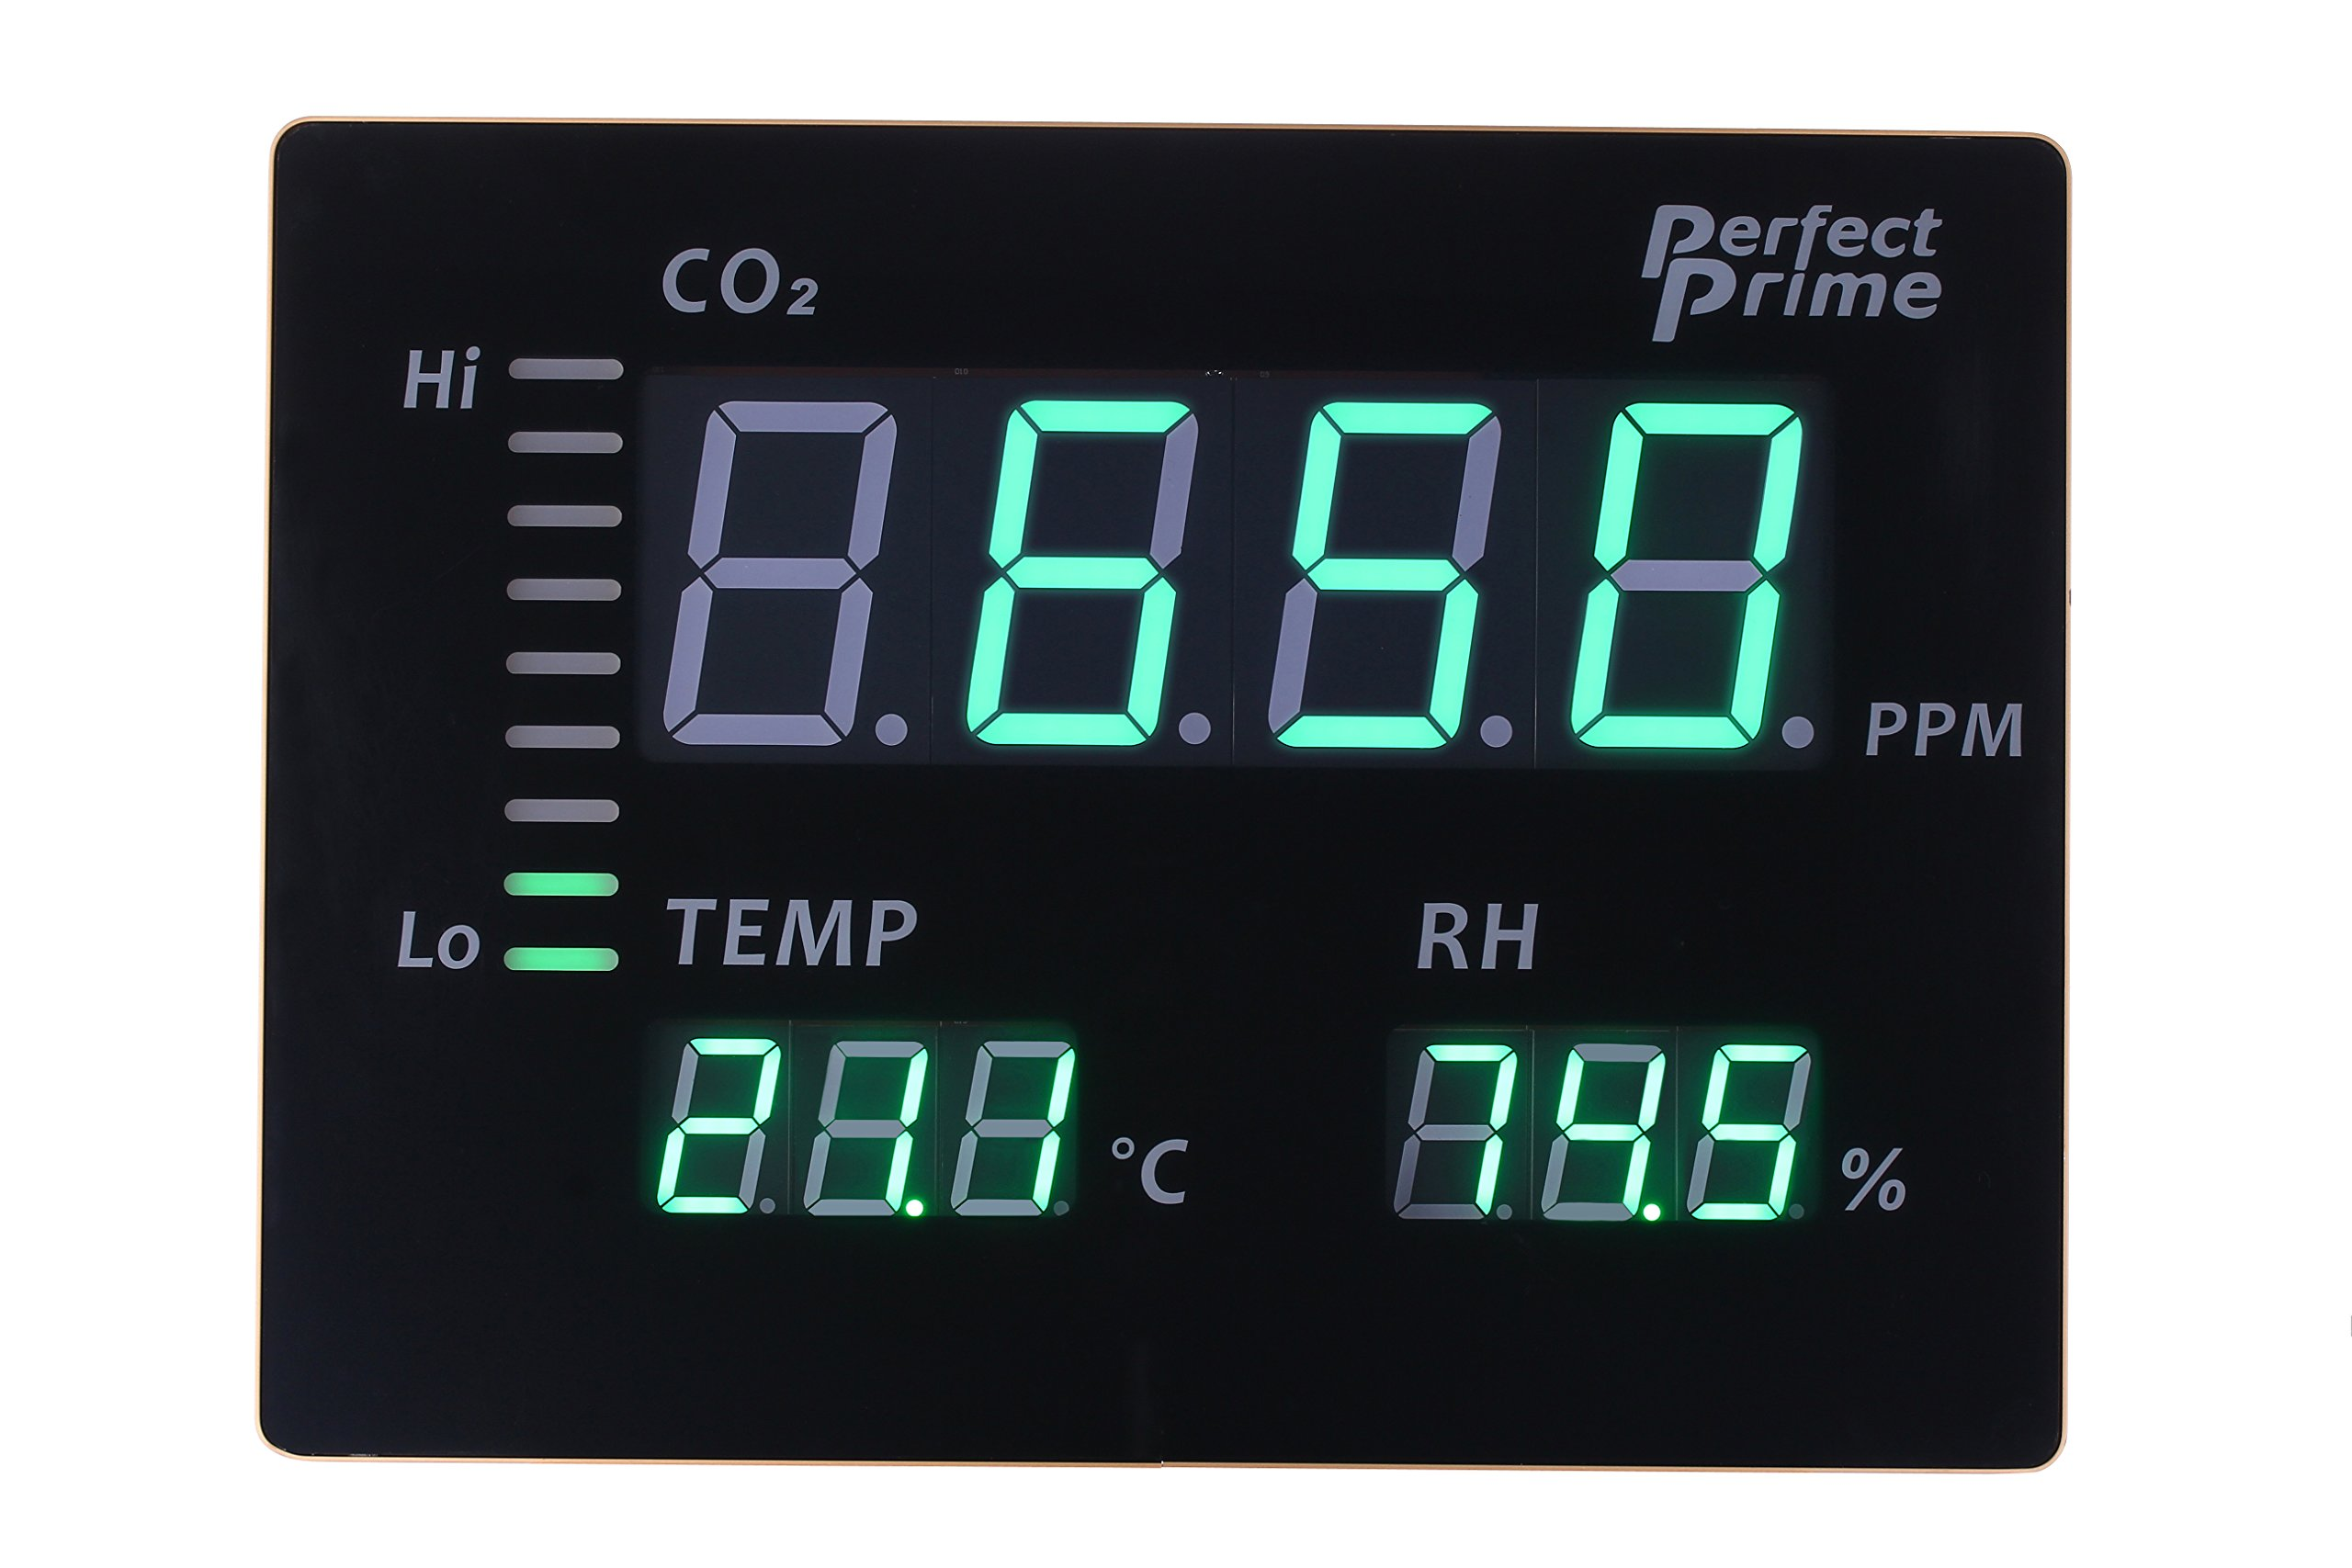 Perfect Prime CO2008 Carbon Dioxide CO2 Temperature Humidity Monitor Large LED Screen, Thermoemter/Hygrometer